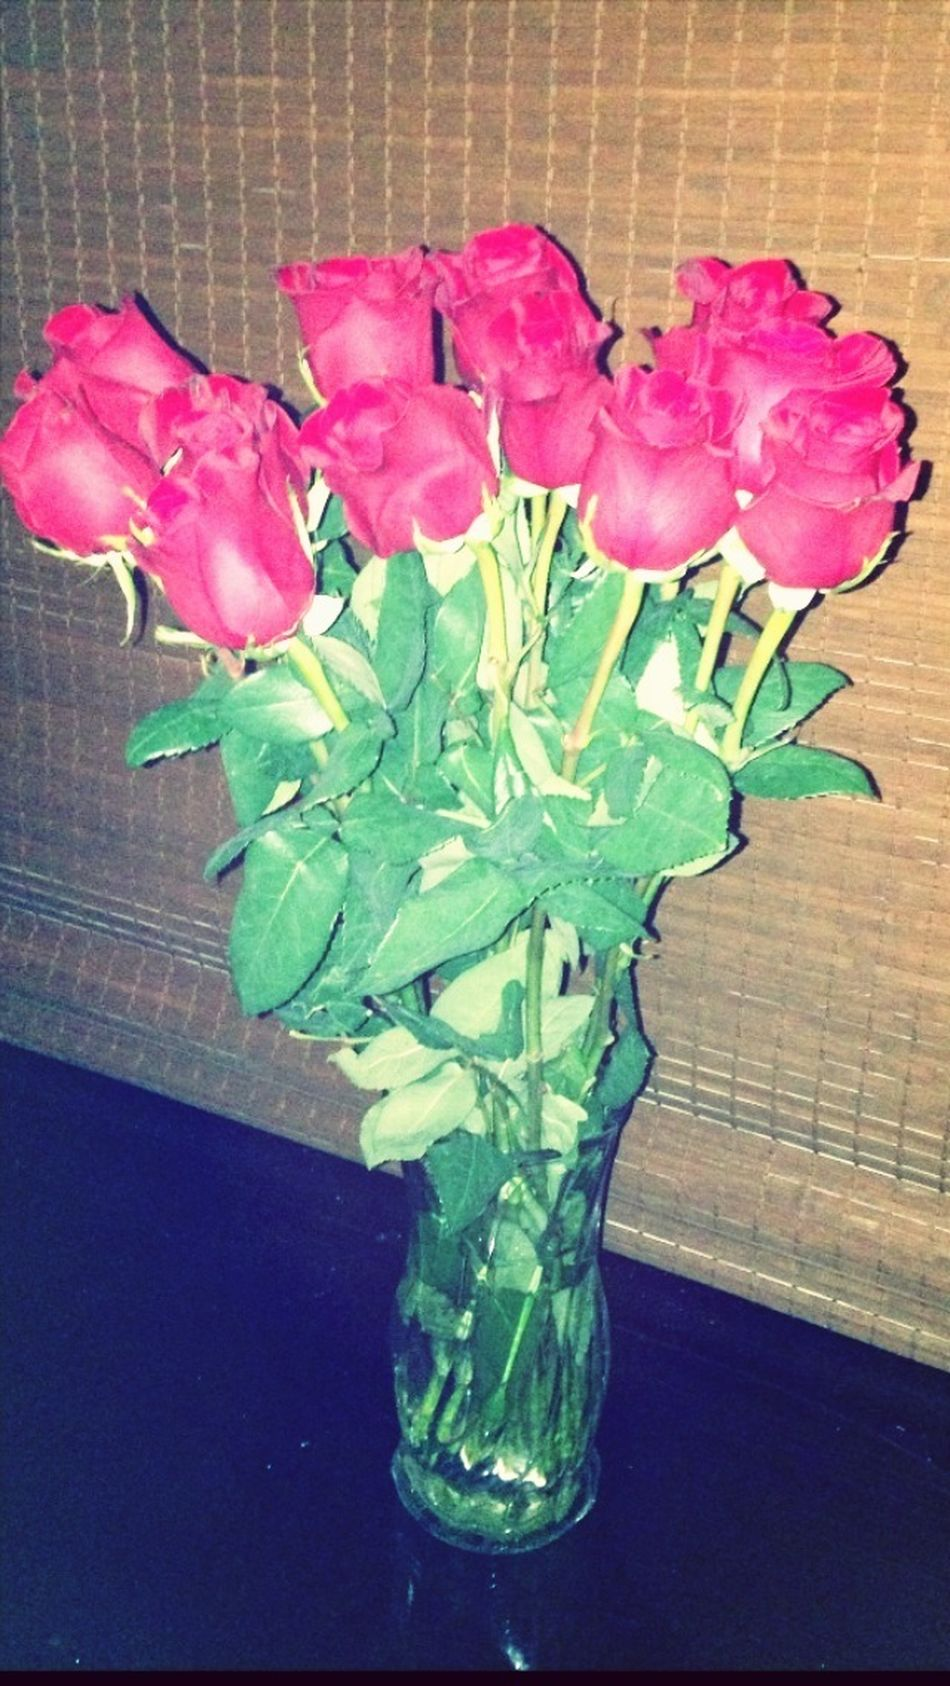 My Beautiful Roses I Got Tonight!